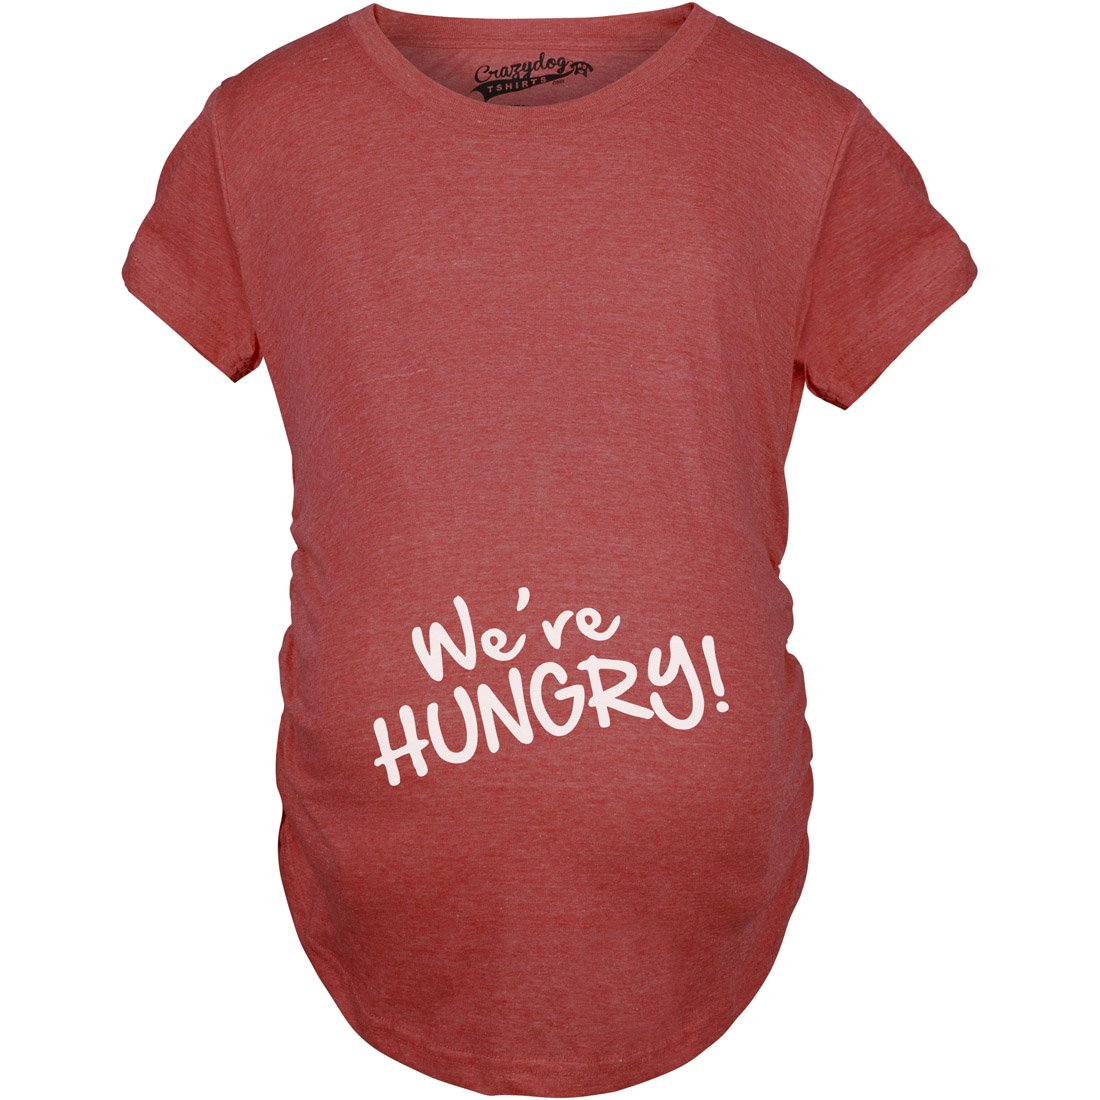 Maternity We're Hungry Funny Baby Bump Pregnancy Announcement T shirt Crazy Dog Tshirts 99hungryMAT